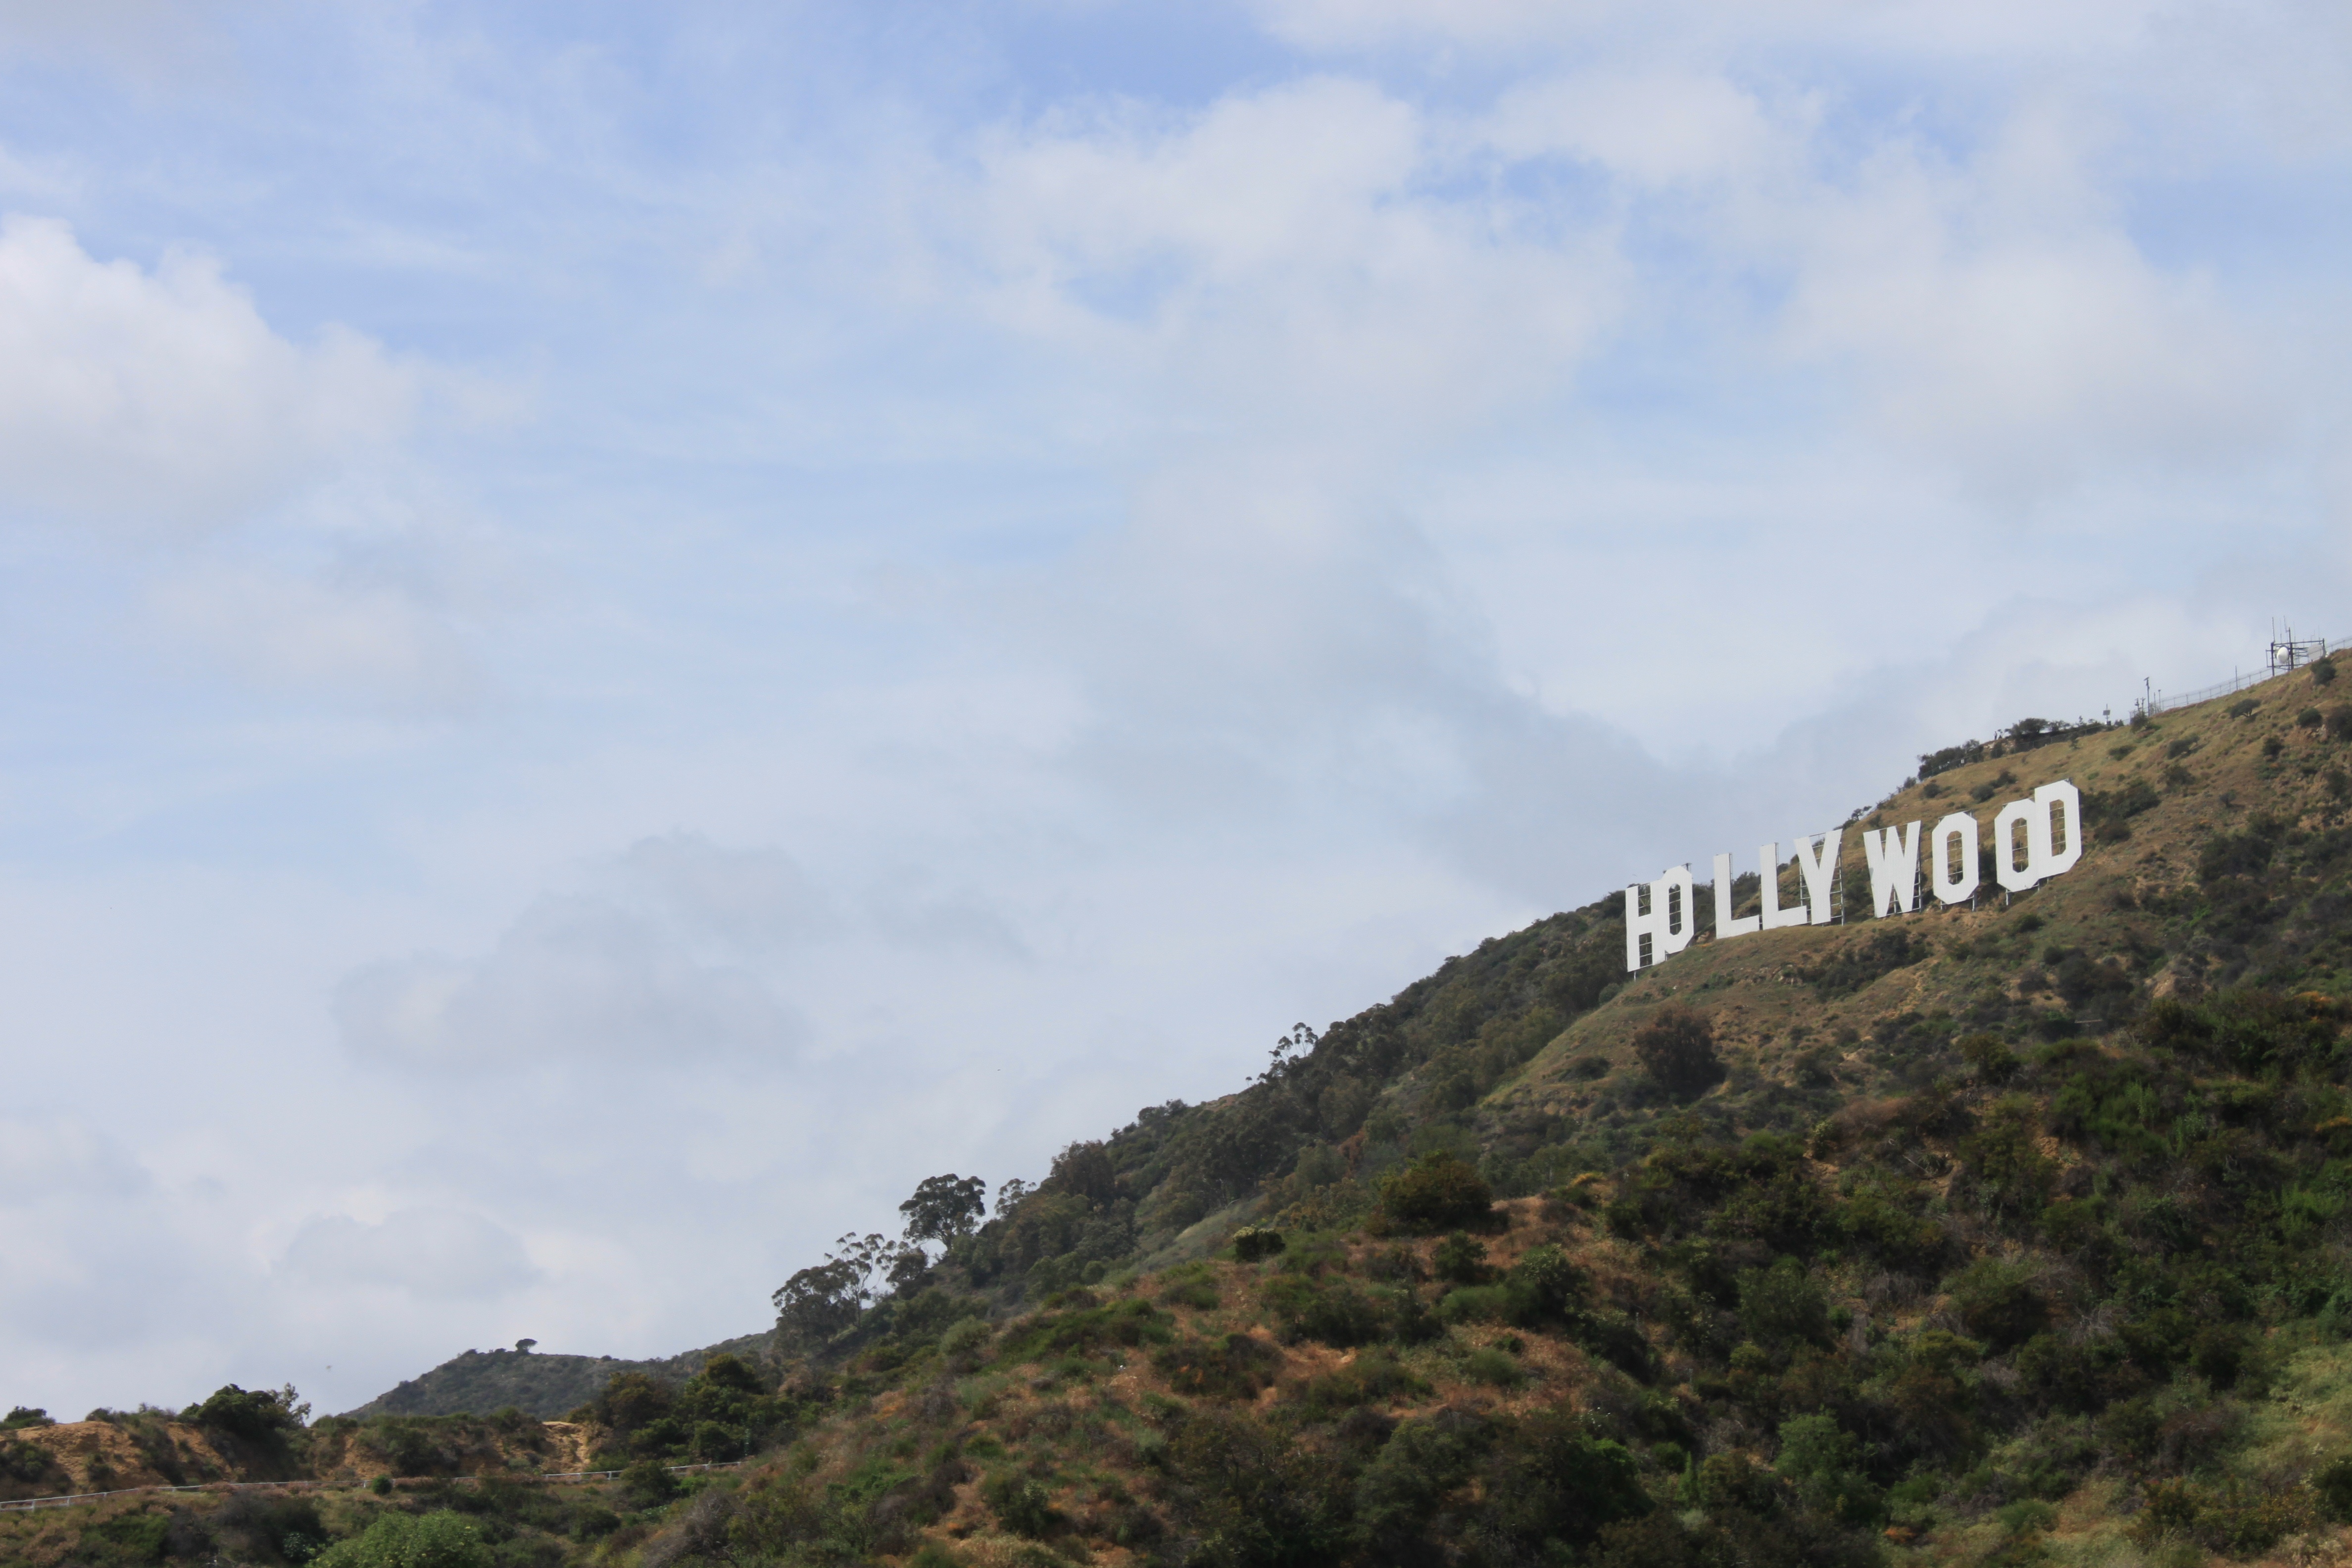 Los Angeles Part One: Earthquakes, Hollywood, and the Getty Museum